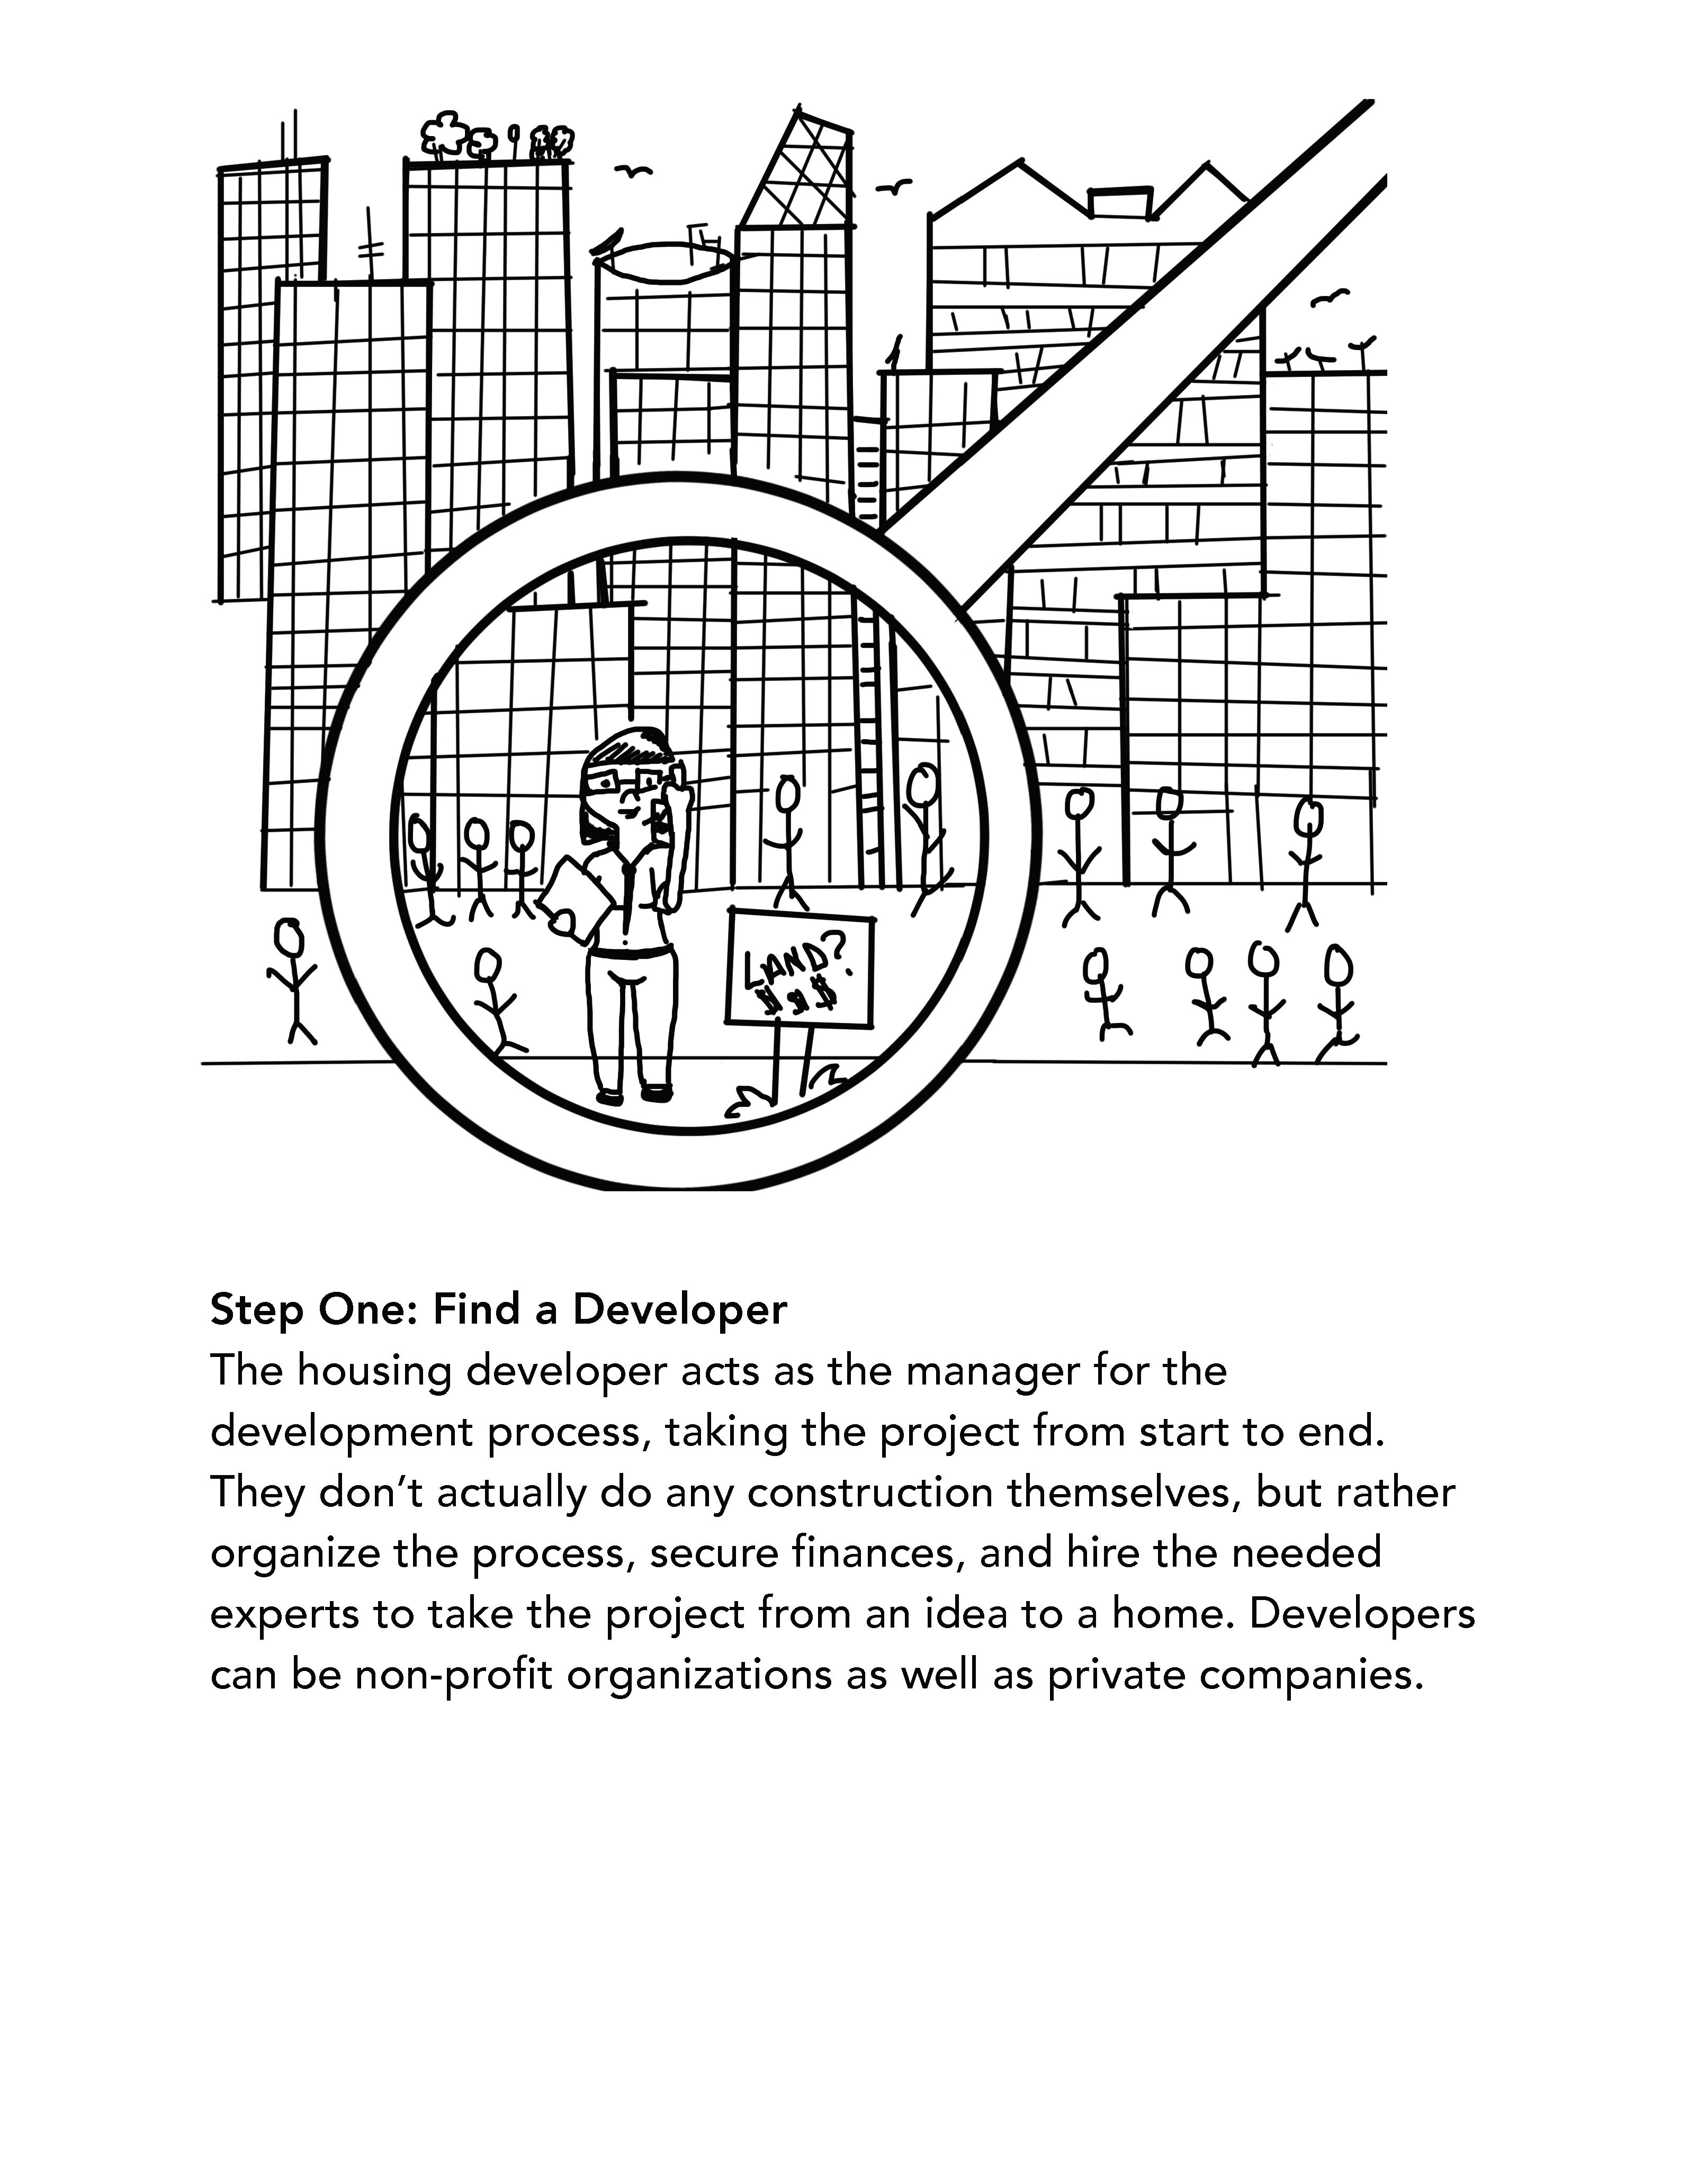 Step One: Find a Developer The housing developer acts as the manager for the development process, taking the project from start to end. They don't actually do any construction themselves, but rather organize the process, secure finances, and hire the needed experts to take the project from an idea to a home. Developers can be non-profit organizations as well as private companies.